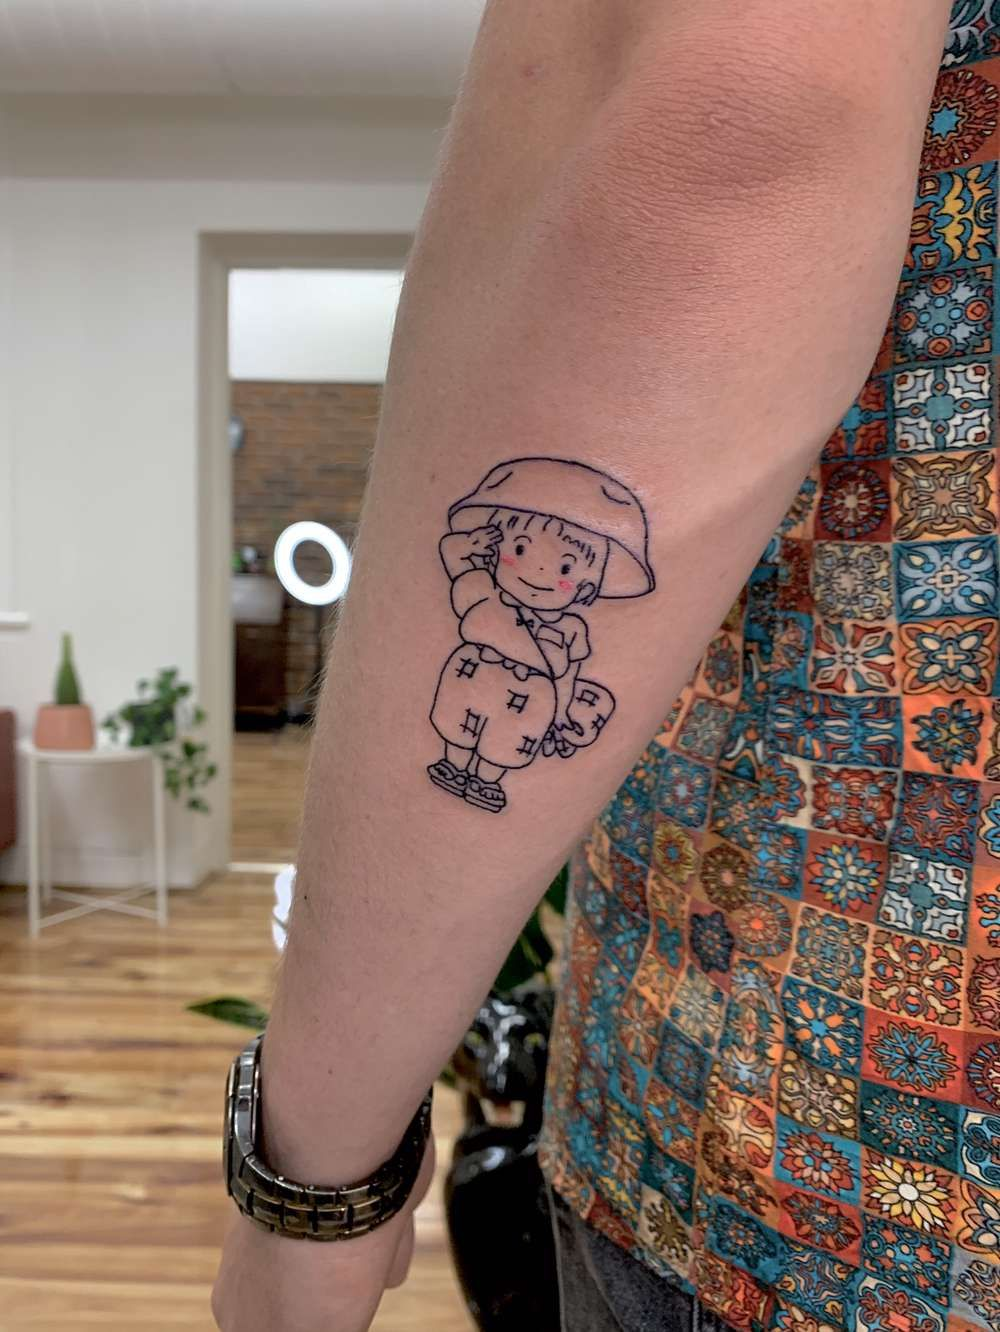 Setsuko From Grave Of The Fireflies Done By Layla Parliament House In 2020 Firefly Tattoo Ghibli Tattoo Grave Of The Fireflies